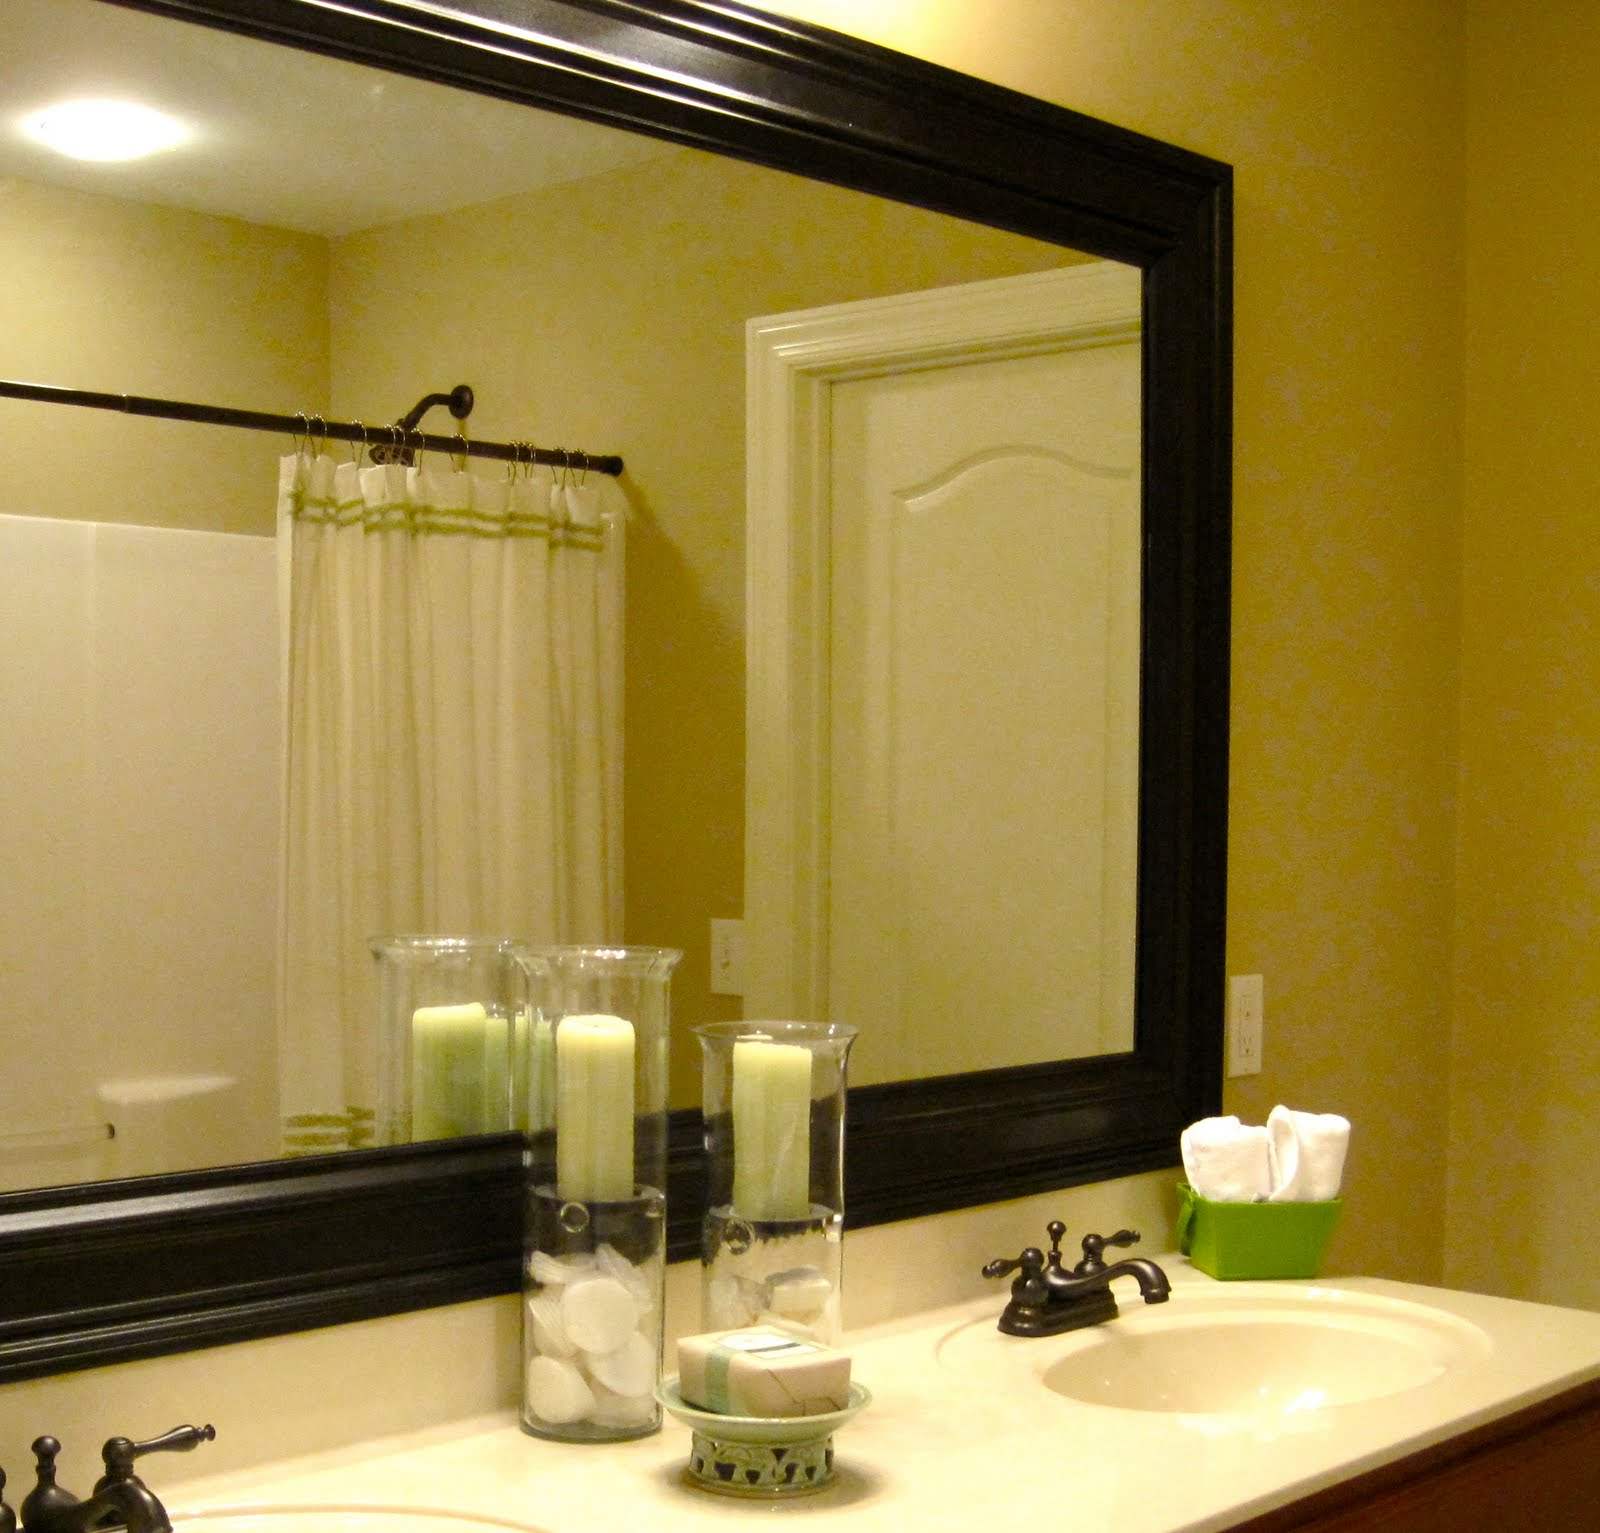 Frame a bathroom mirror with molding - Frame A Bathroom Mirror With Molding 2